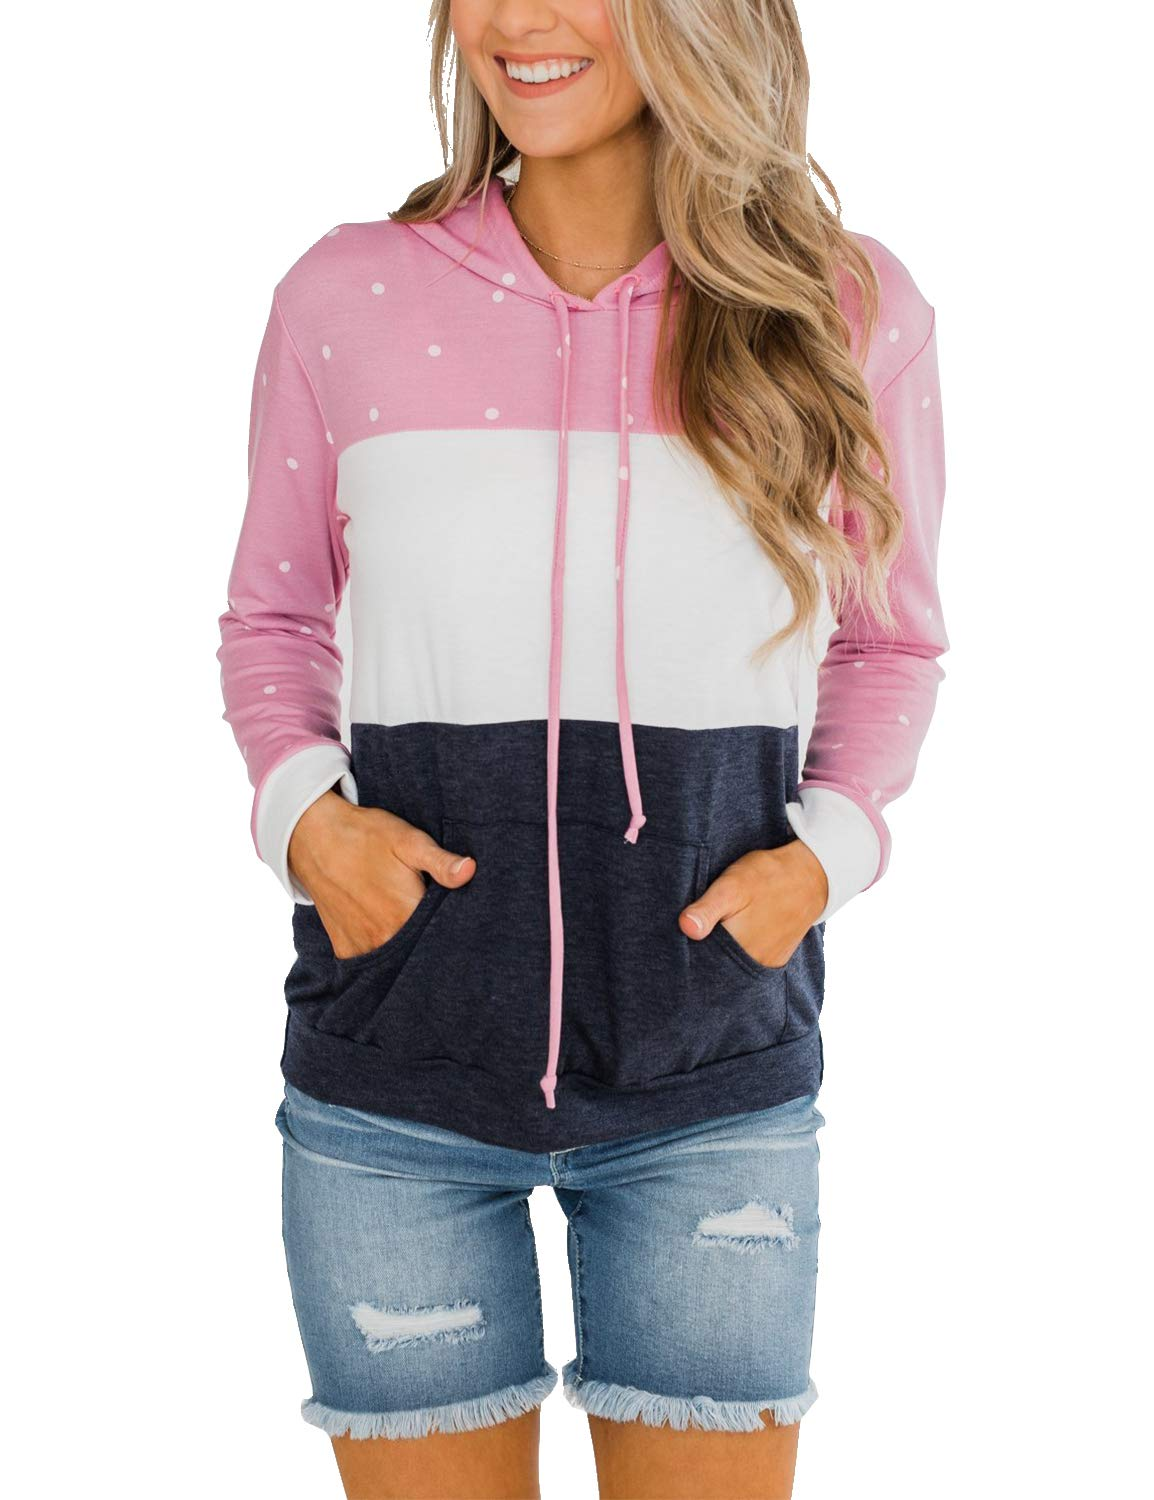 BMJL Women's Casual Hoodie Sweatershirt Color Block Long Sleeve Pullover with Pocket